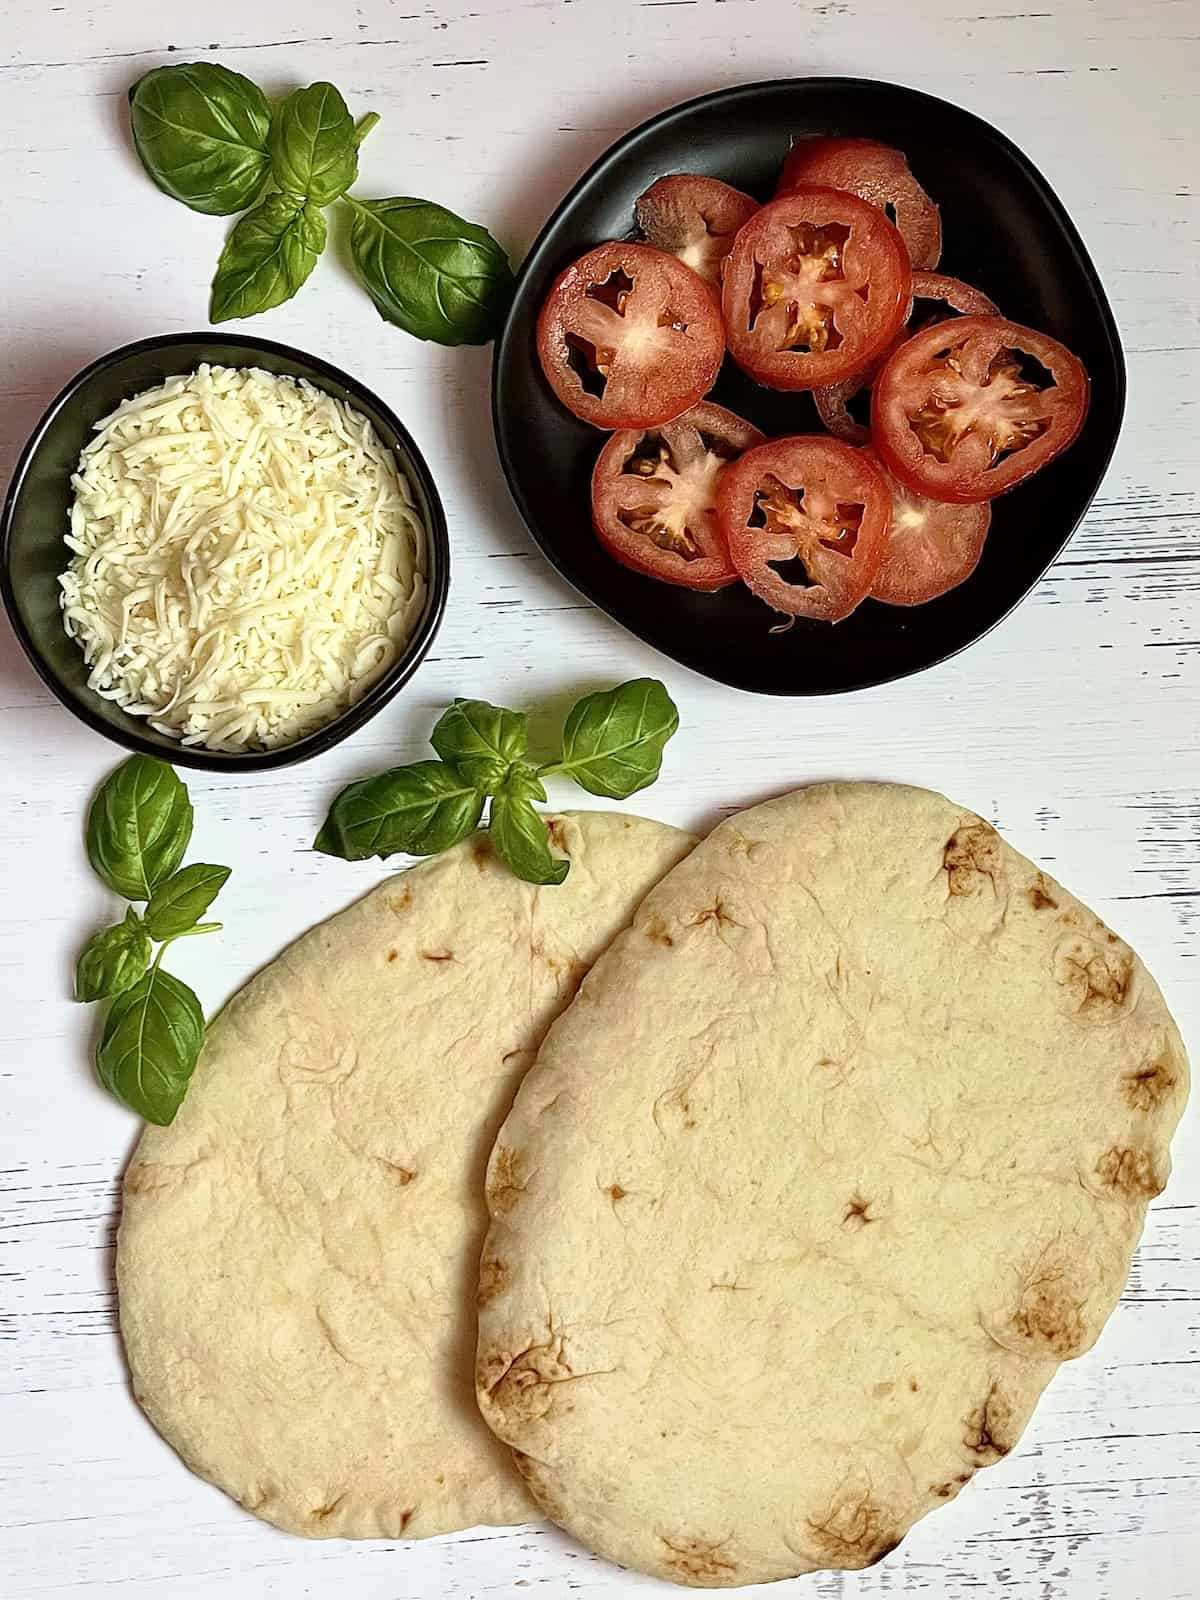 naan bread, mozzarella cheese, sliced tomatoes, and fresh basil leaves